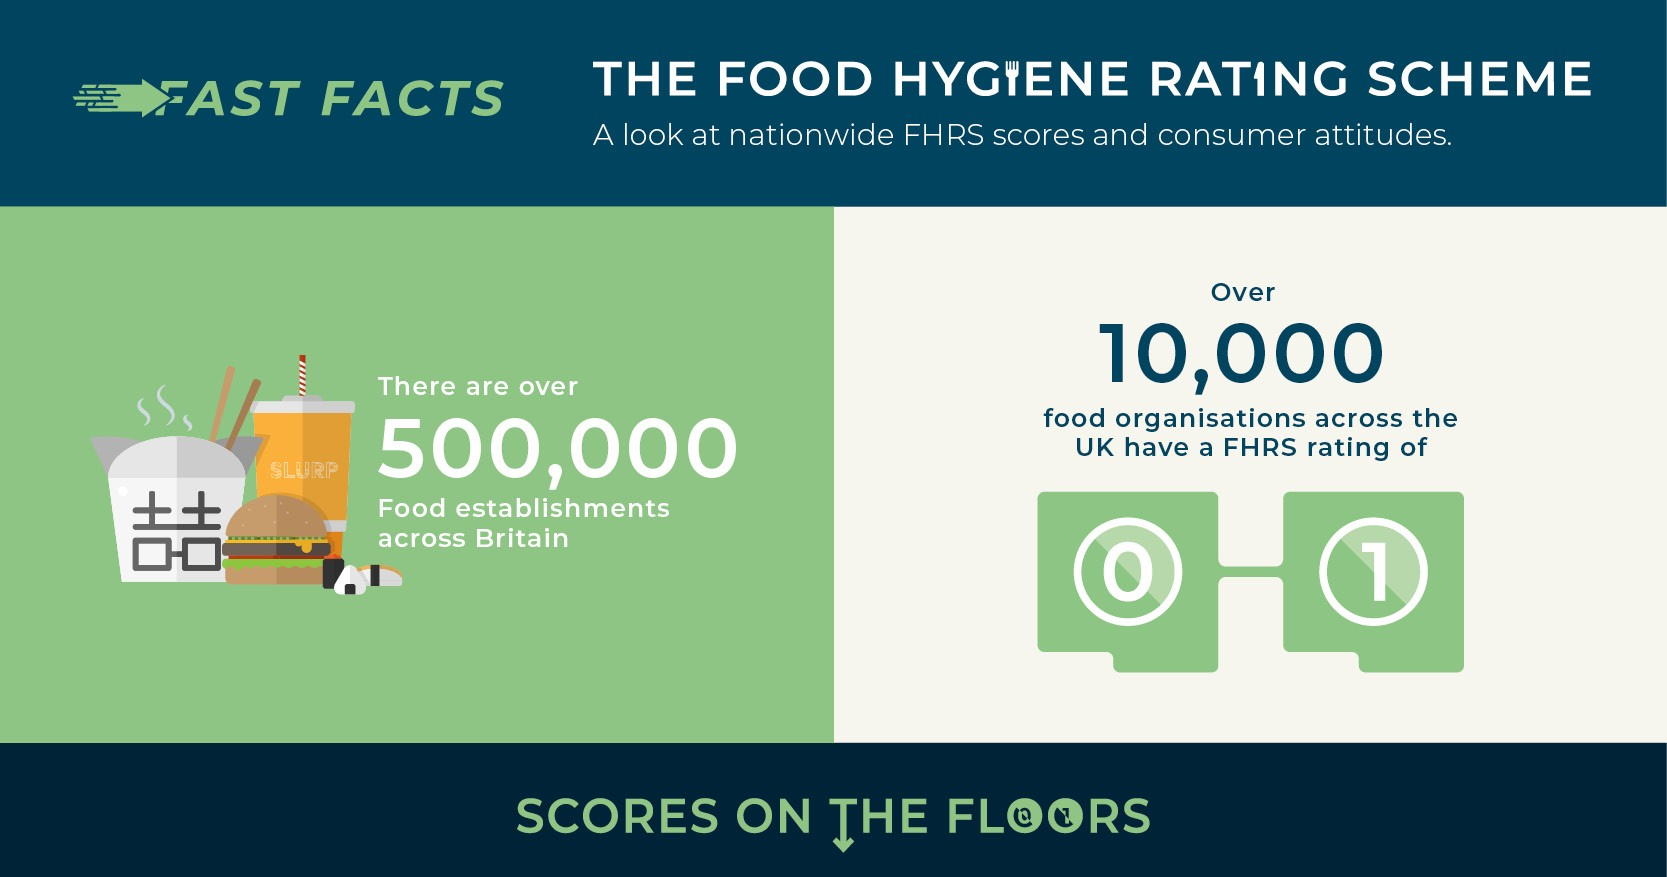 Food Hygiene Rating Scheme Infographic